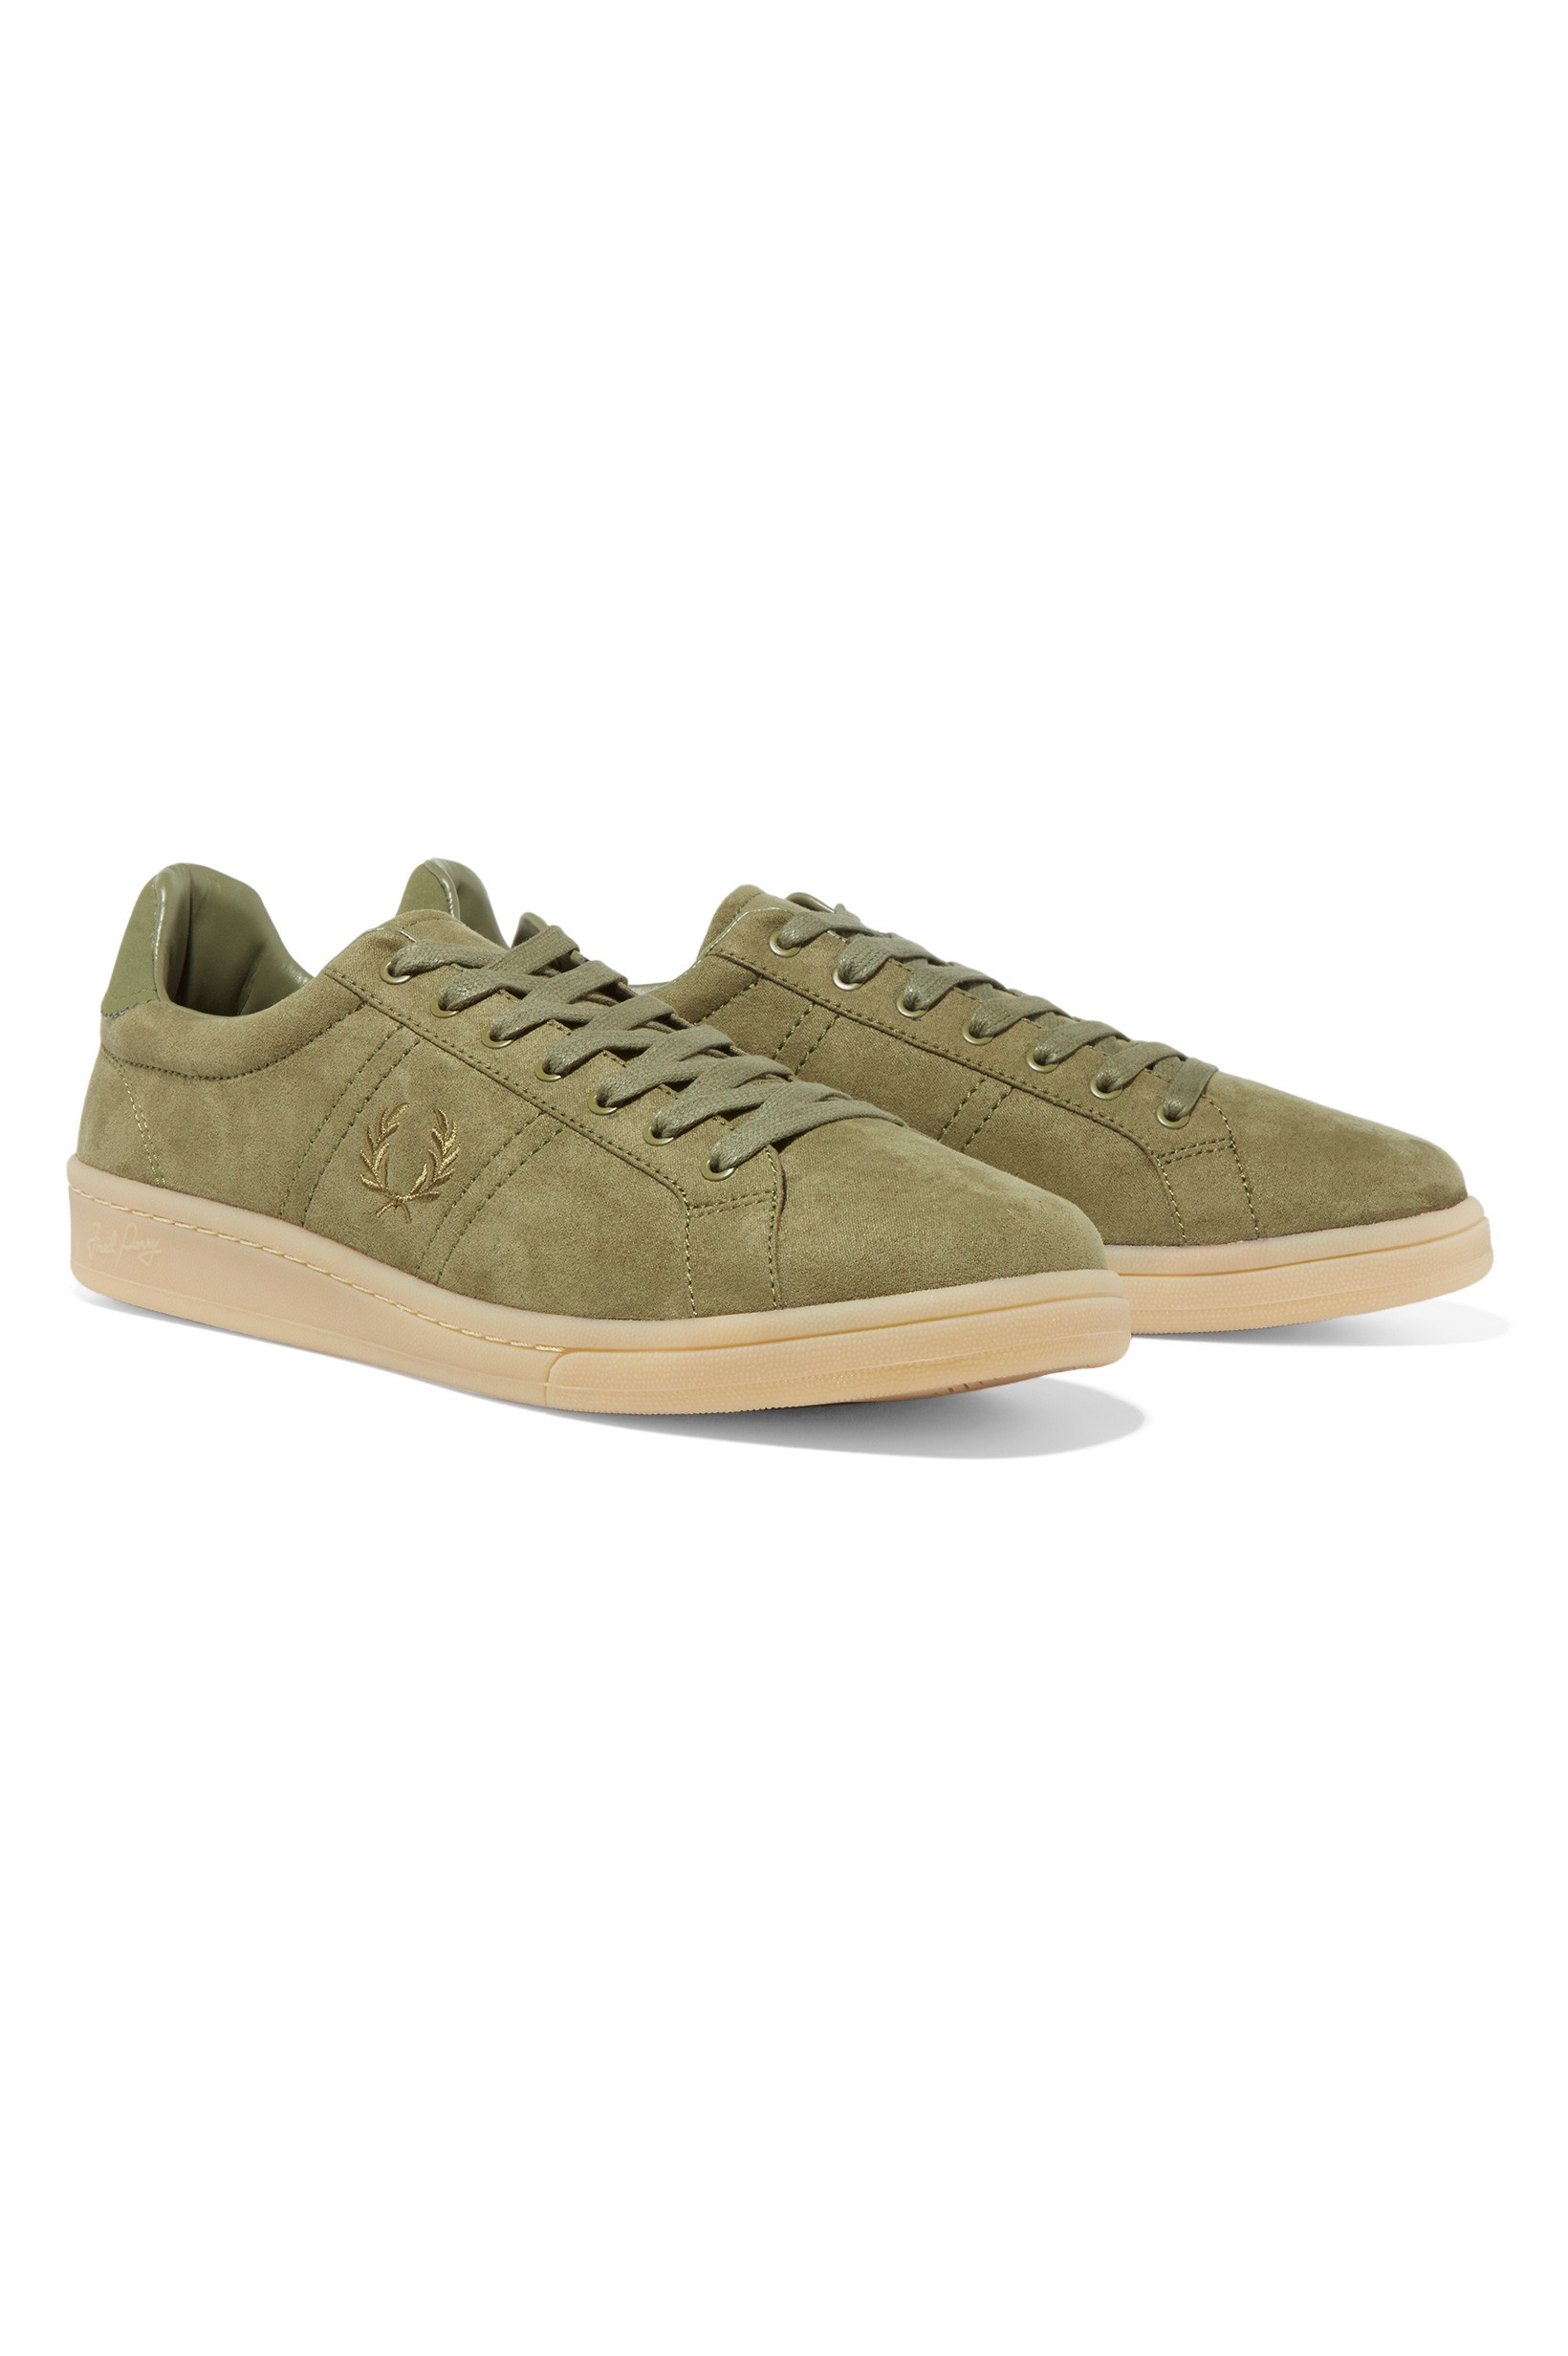 Fred Perry Burnt Olive B721 Microfibre